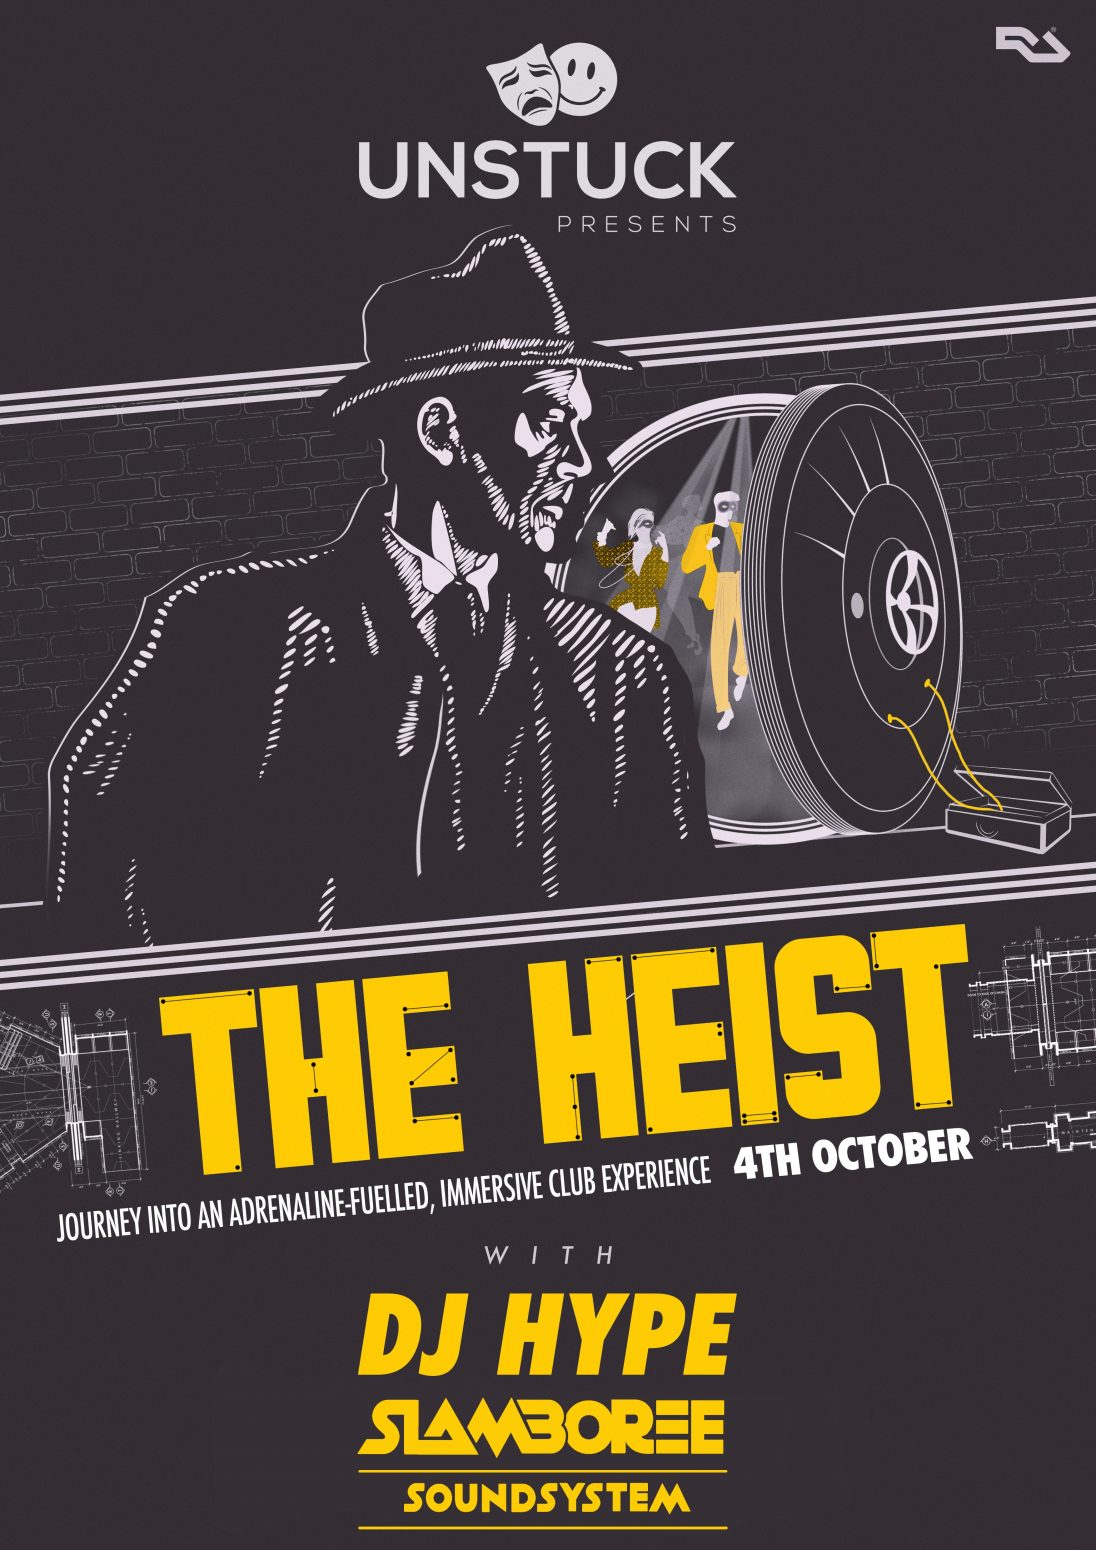 The Heist 4th Oct 2019